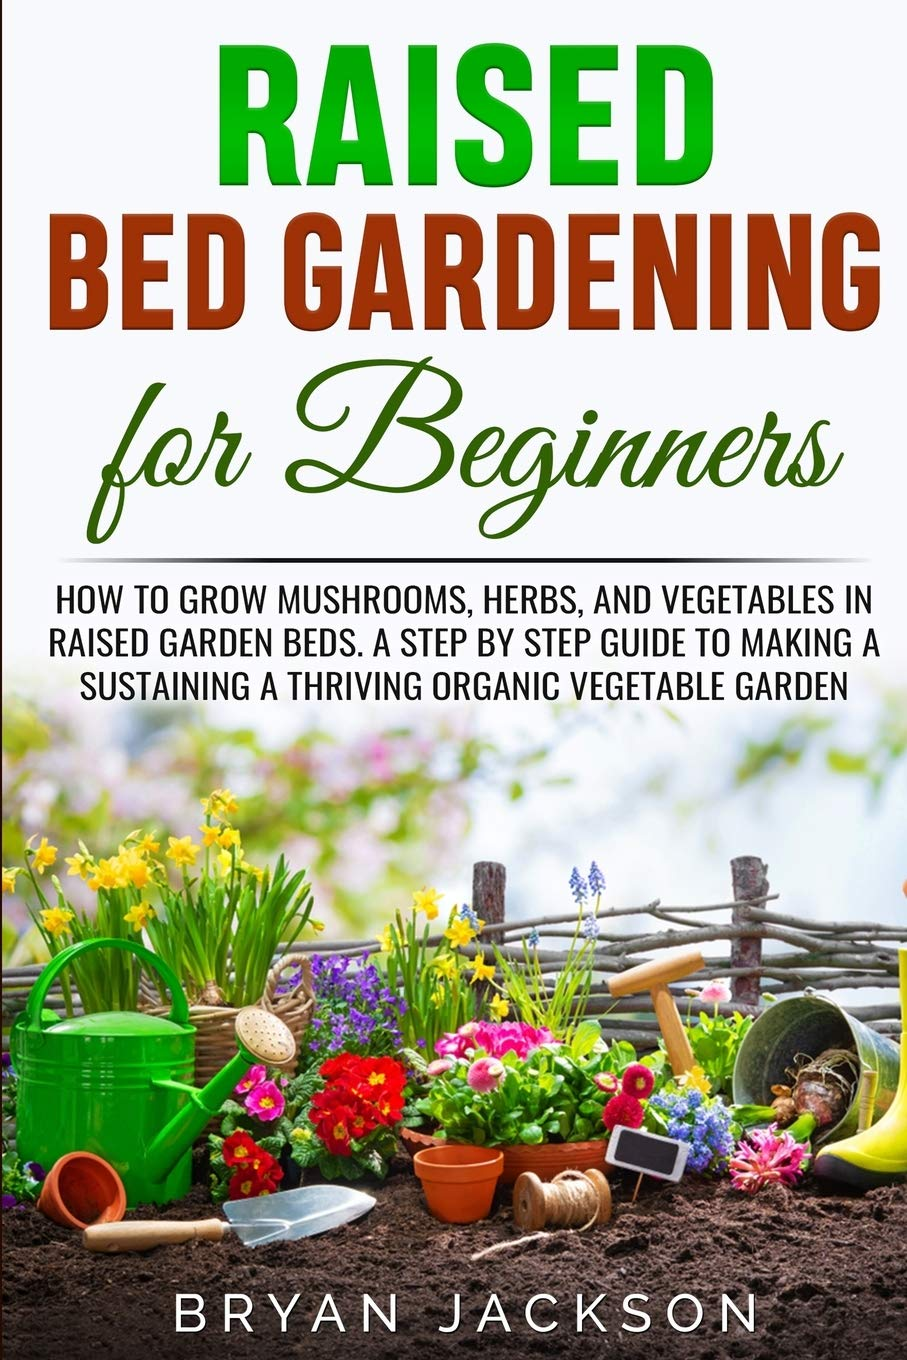 Raised Bed Gardening for Beginners: How to Grow Mushrooms, Herbs, and Vegetables in Raised Garden Beds. A Step by Step Guide to Making a Sustaining a Thriving Organic Vegetable Garden.